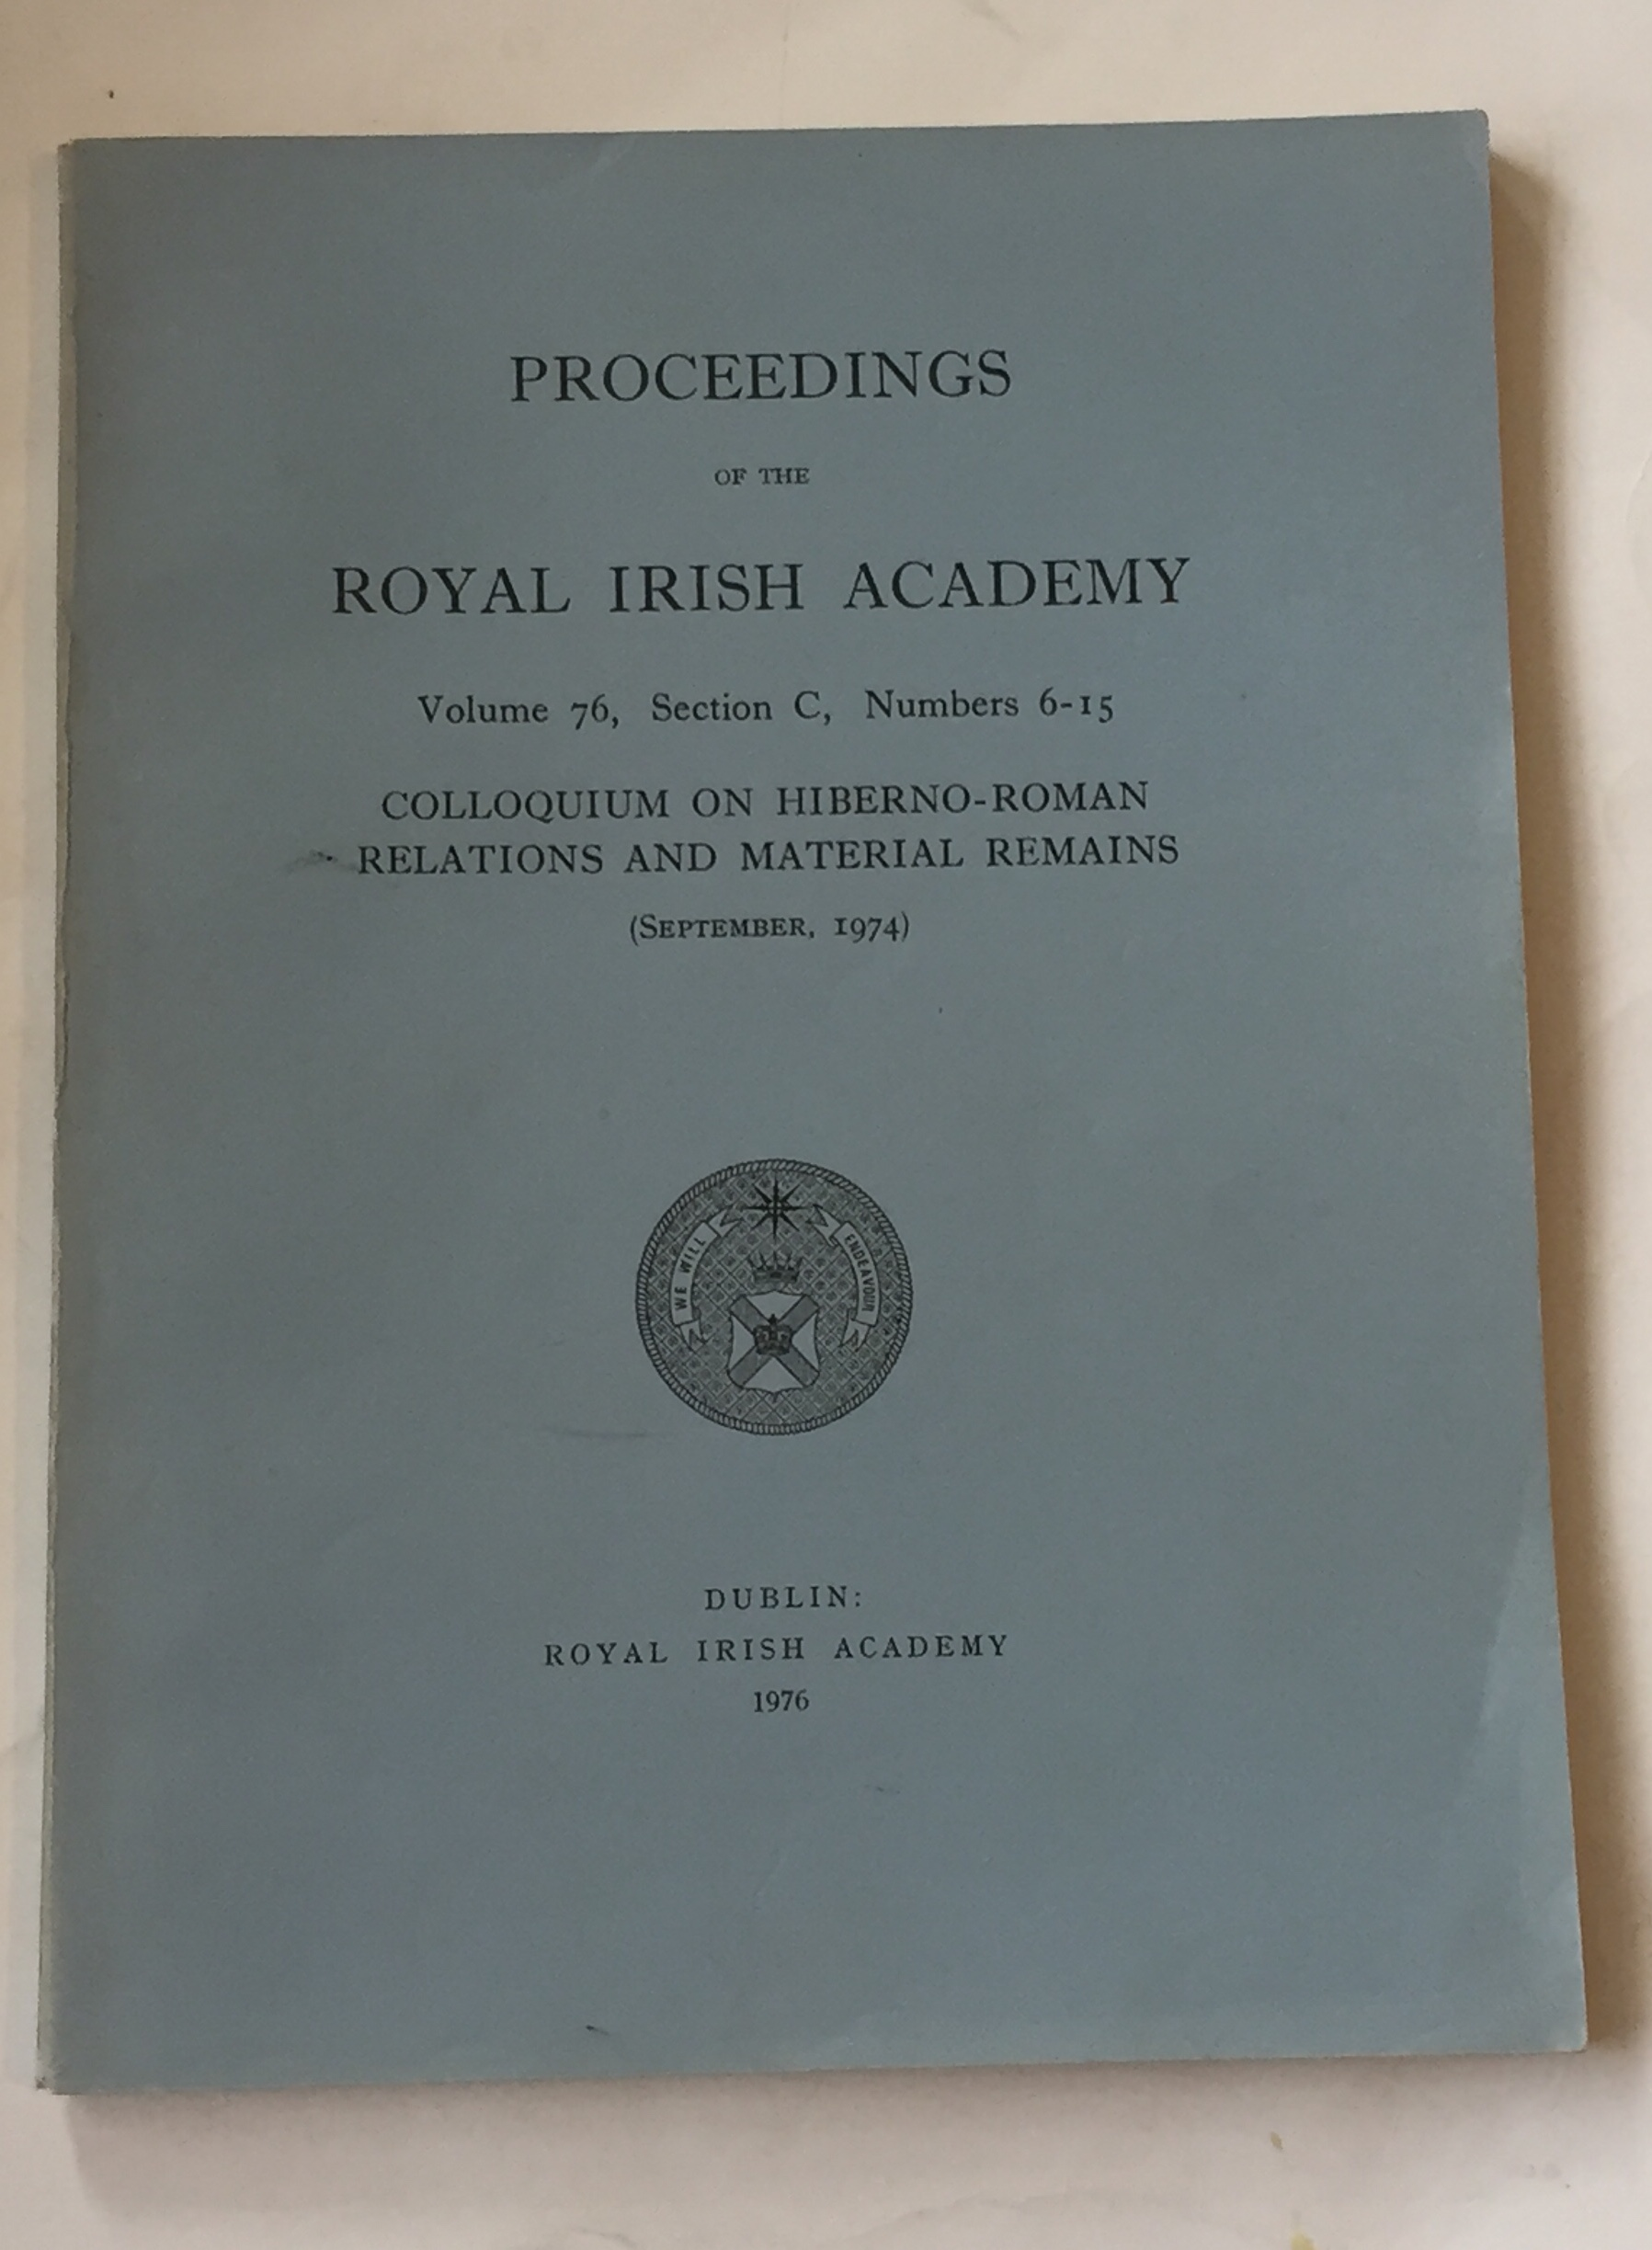 Image for Colloquium on Hiberno-Roman Relations and Material Remains (September, 1974) :Proceedings of the Royal Irish Academy, Volume 76, Section C, No. 6-15